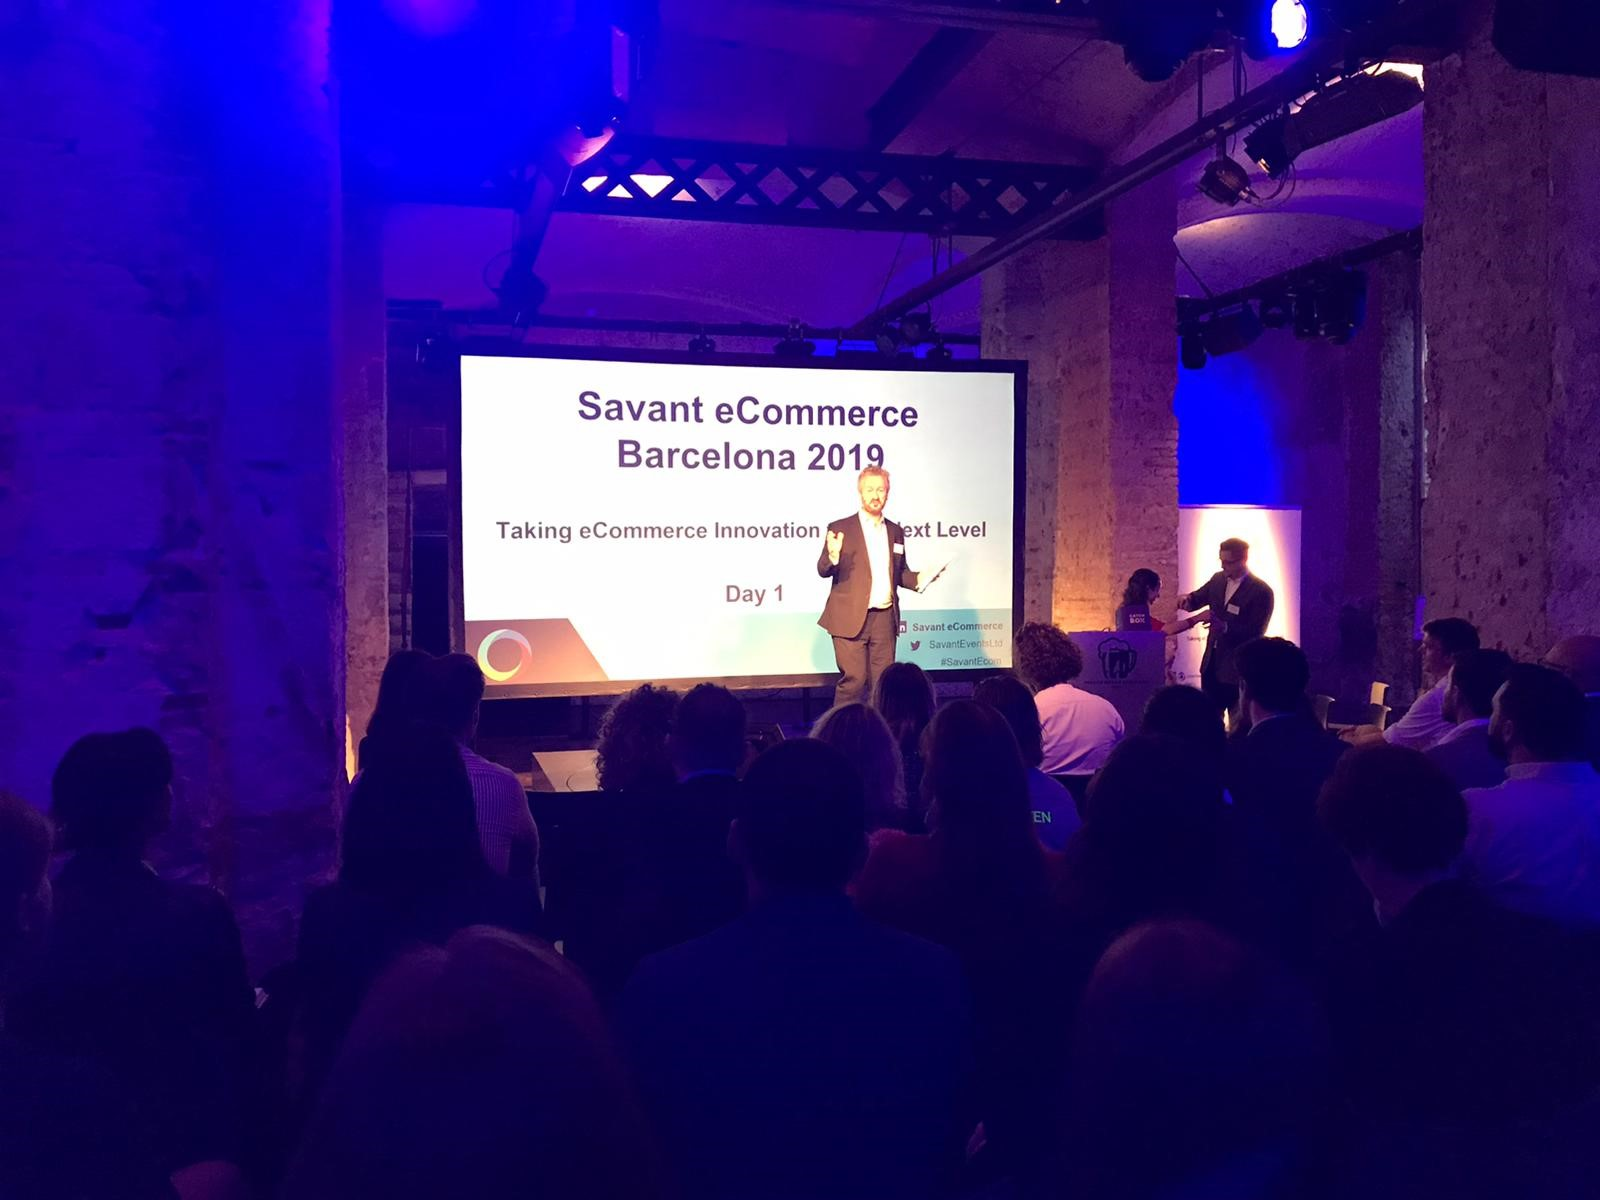 Ecommerce Conferences Savant